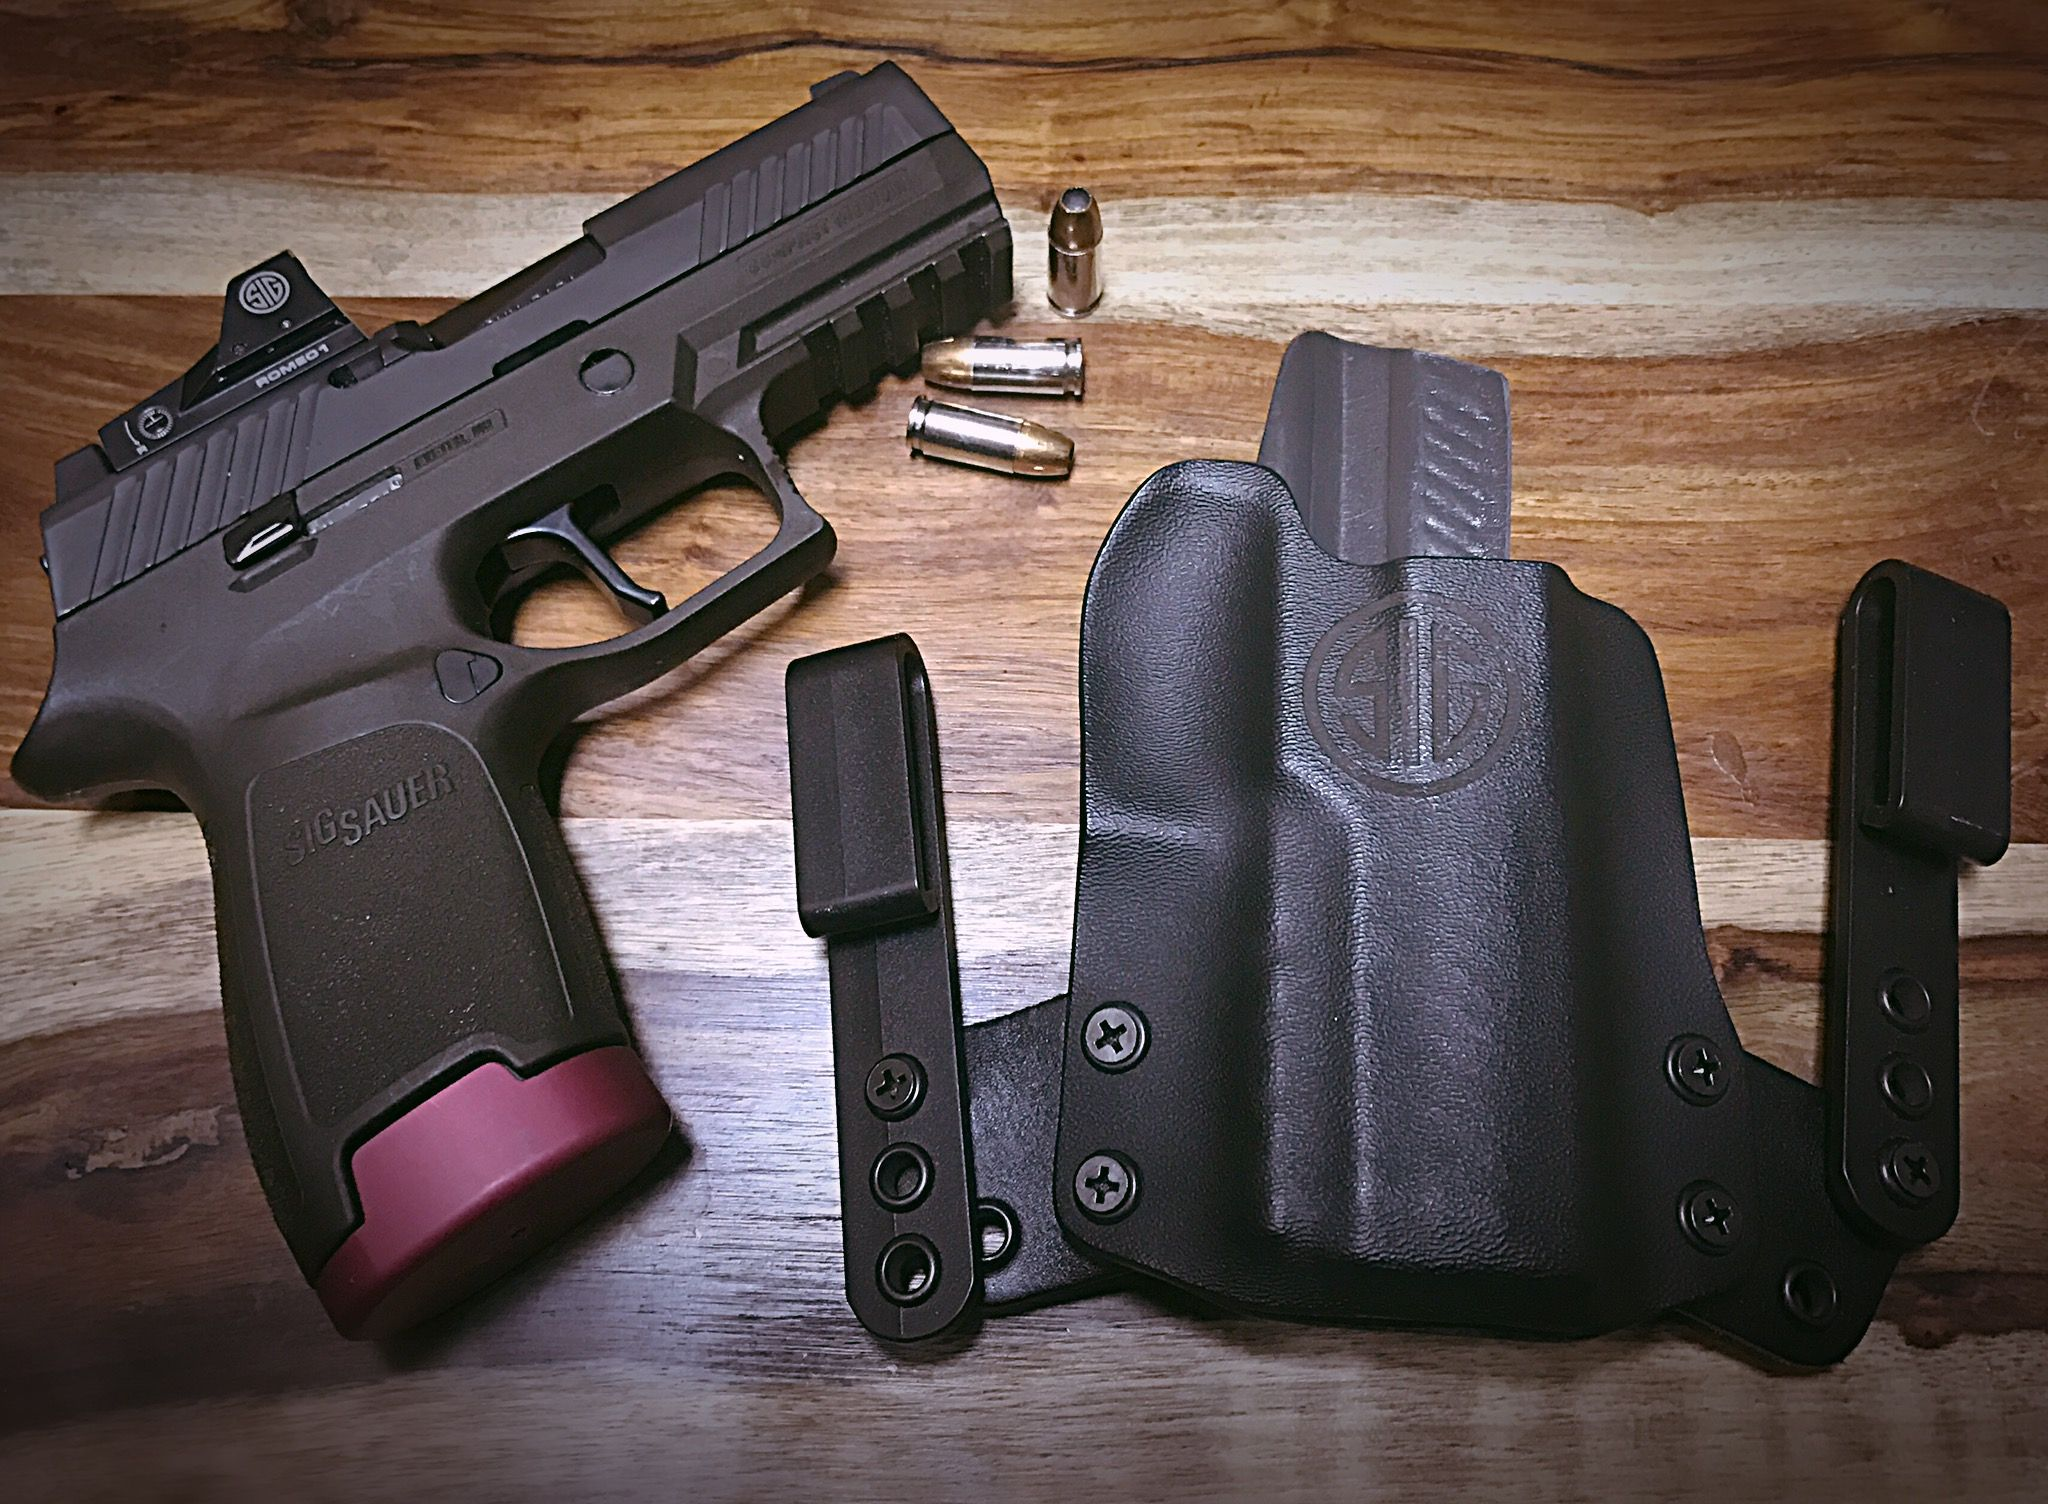 Pin by Dave Richardson on Sig Sauer P320 | Sig p320, Guns